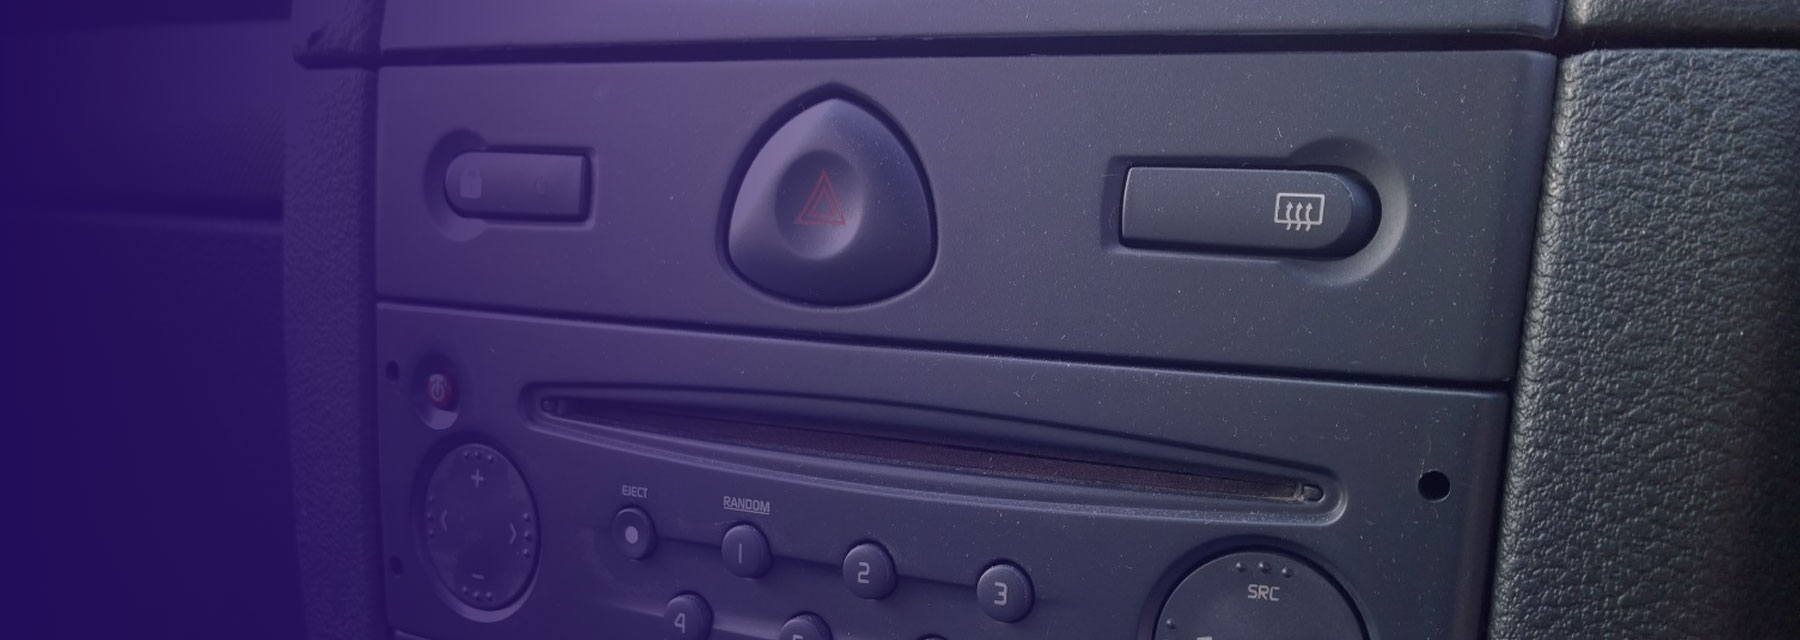 Does my car stereo hate me? | Matt Pucci |